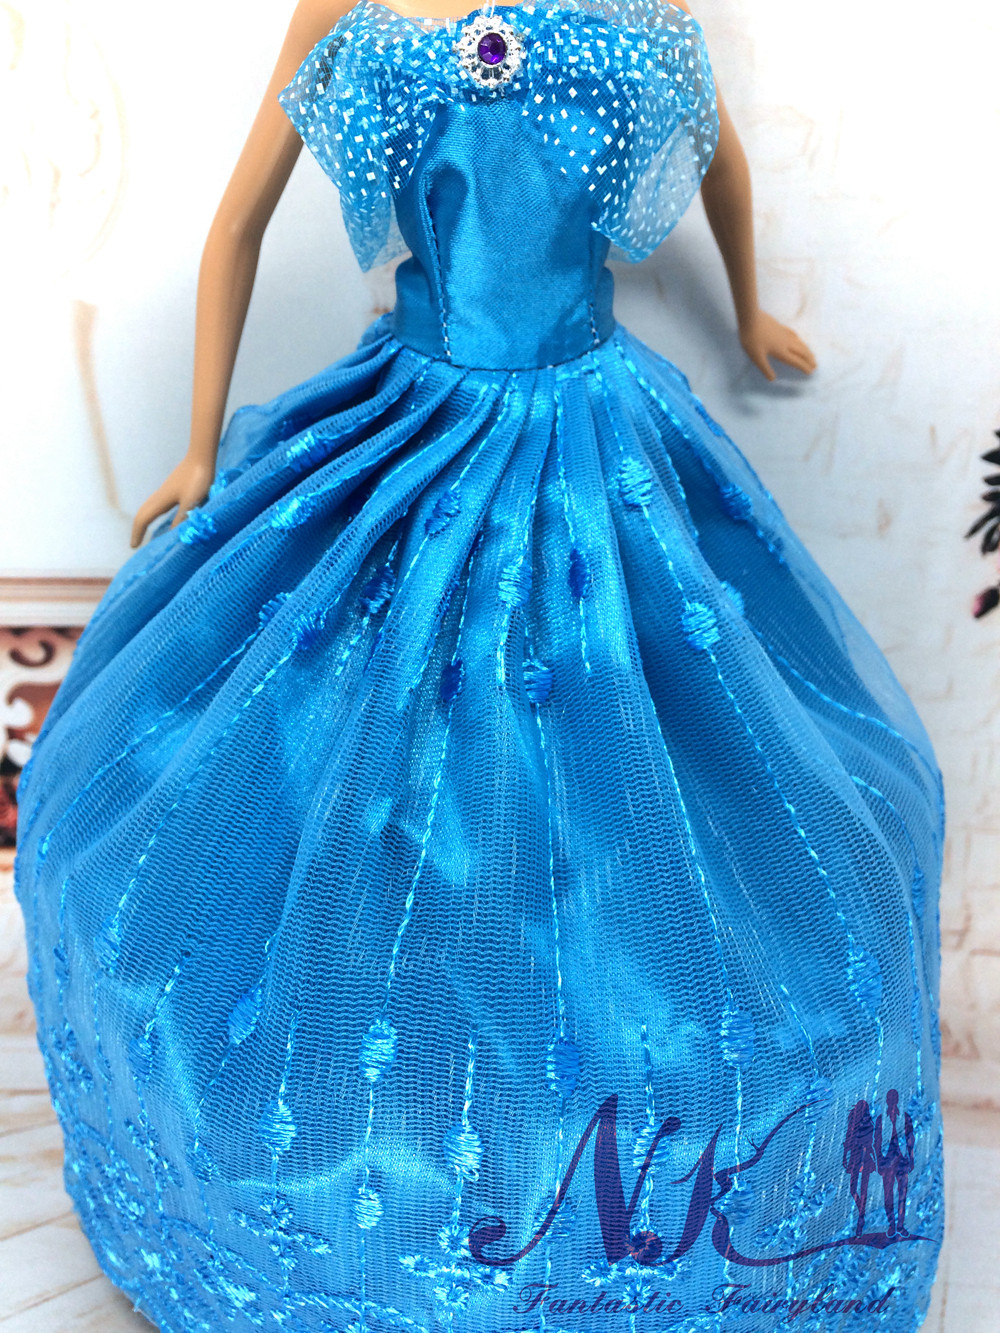 NK One Pcs Princess Gown For Cinderella Films Wedding ceremony Gown Noble Social gathering Robe For Barbie Doll Outfit Finest Present For Lady' Doll